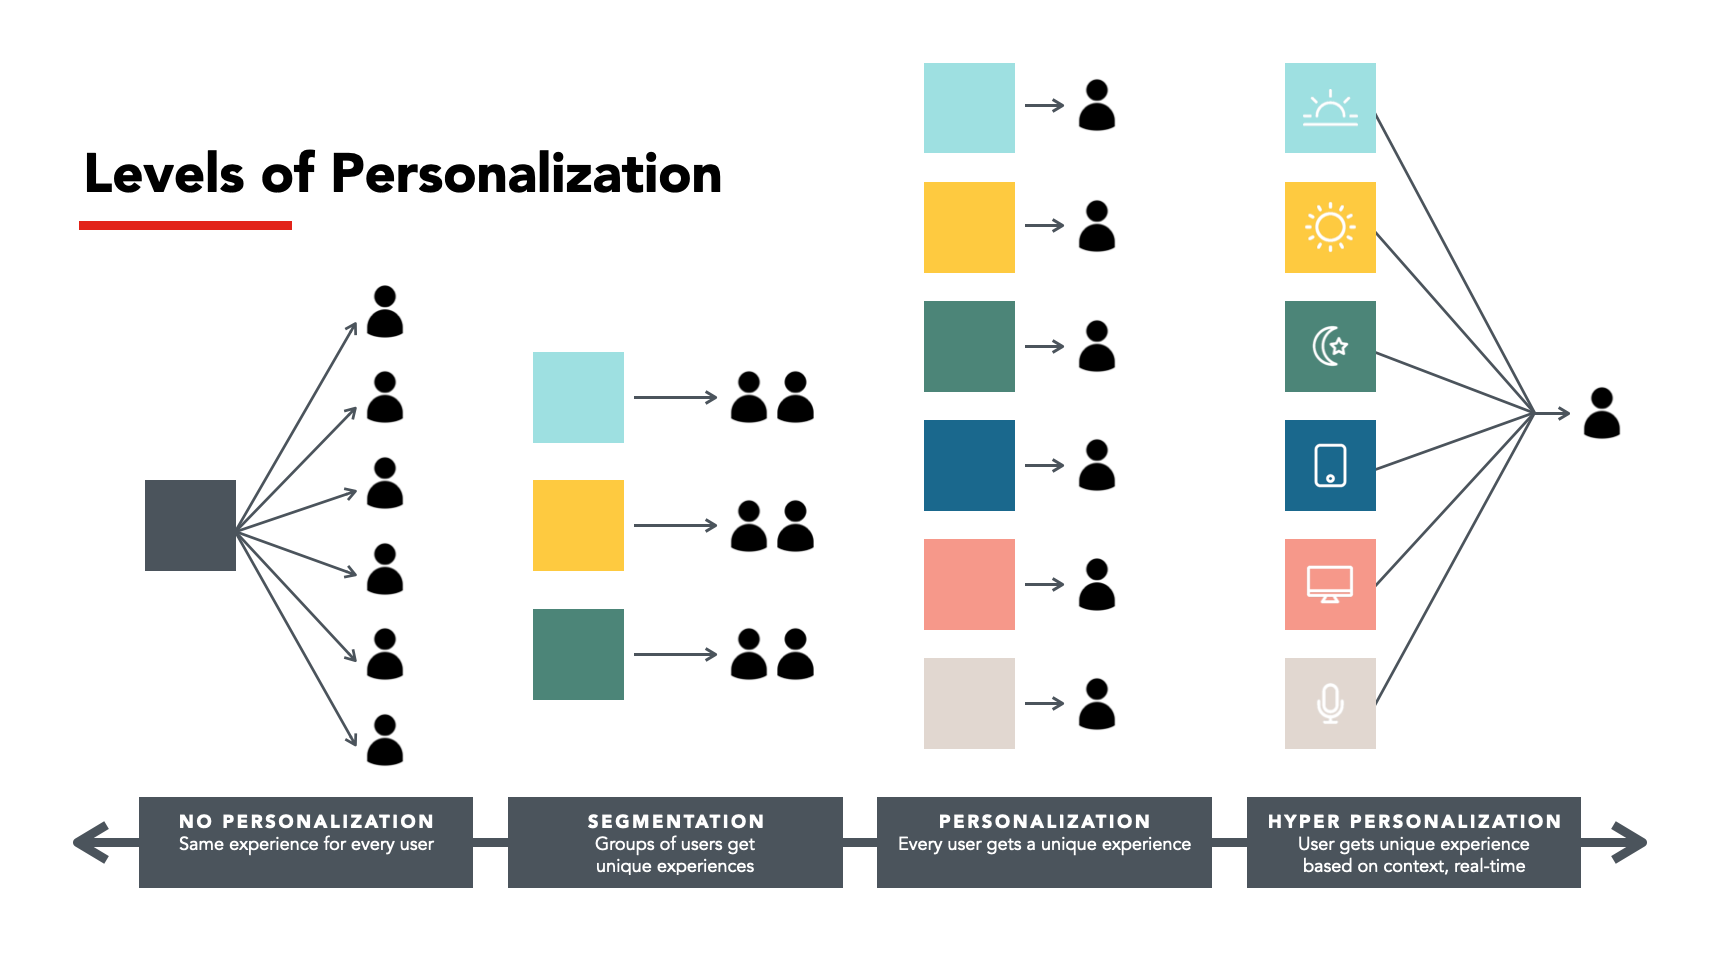 2021-QSR-Levels-of-Personalization